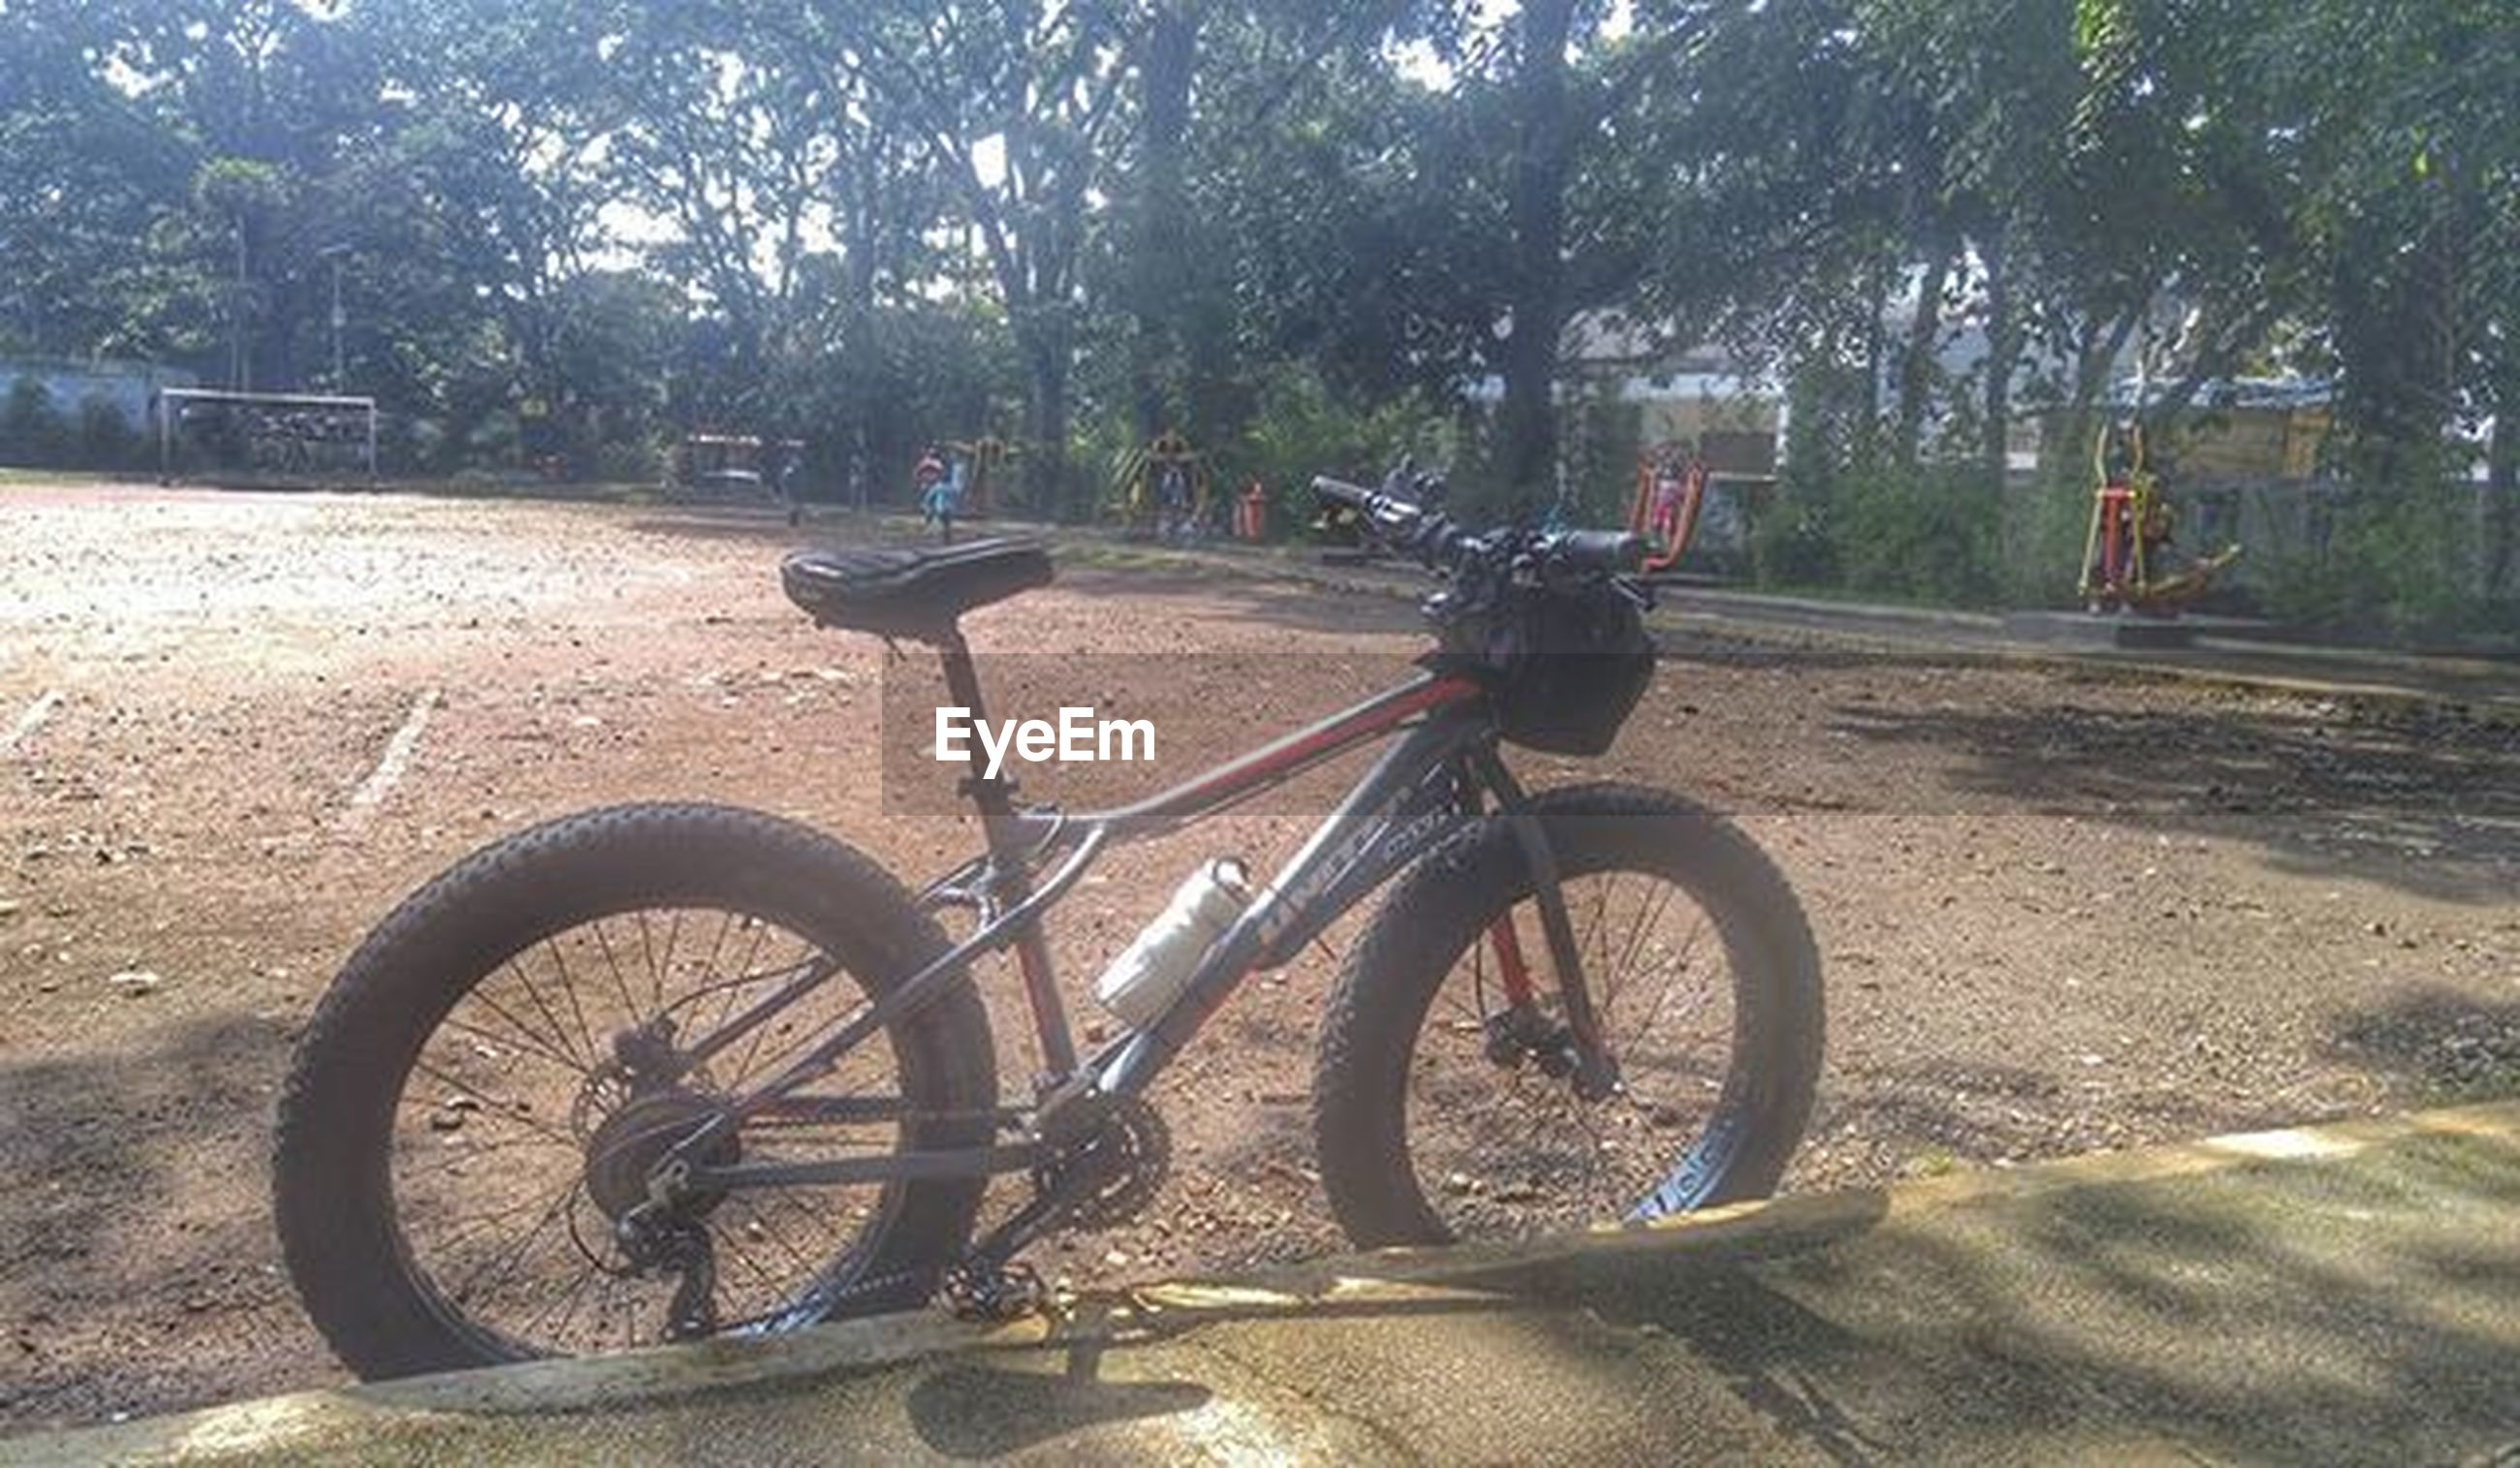 bicycle, land vehicle, transportation, mode of transport, stationary, parking, tree, parked, sunlight, street, wheel, day, shadow, outdoors, no people, nature, road, absence, footpath, tranquility